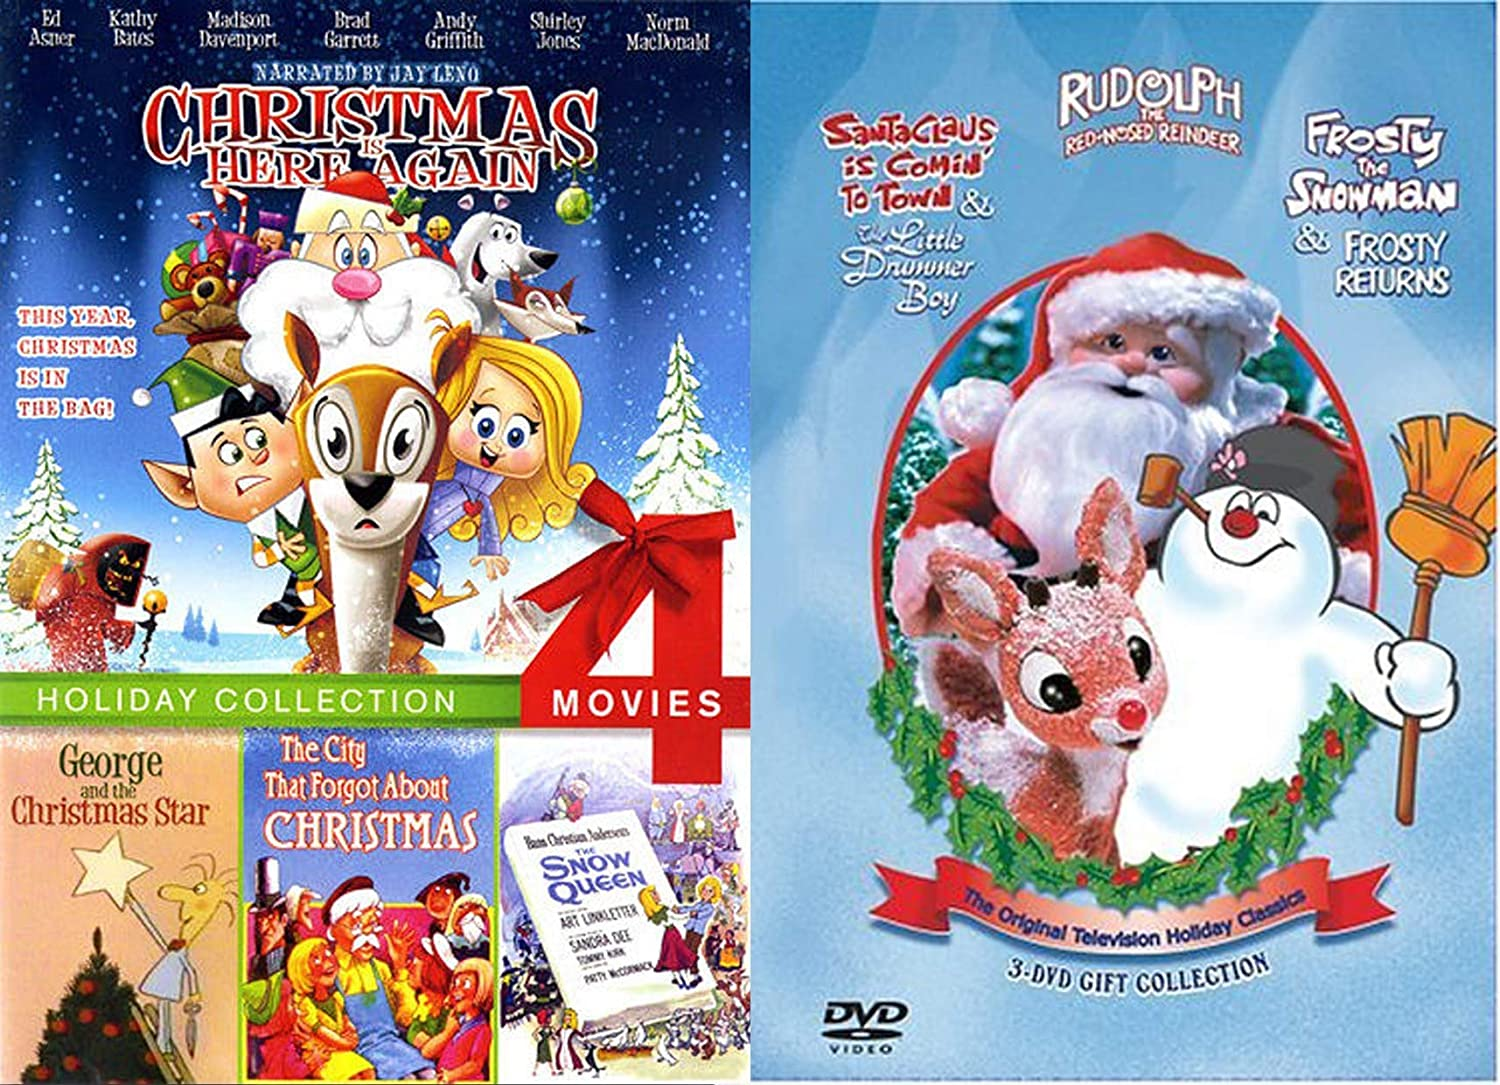 Rudolph Christmas Special.Amazon Com It S The Holidays Special Cartoon Christmas